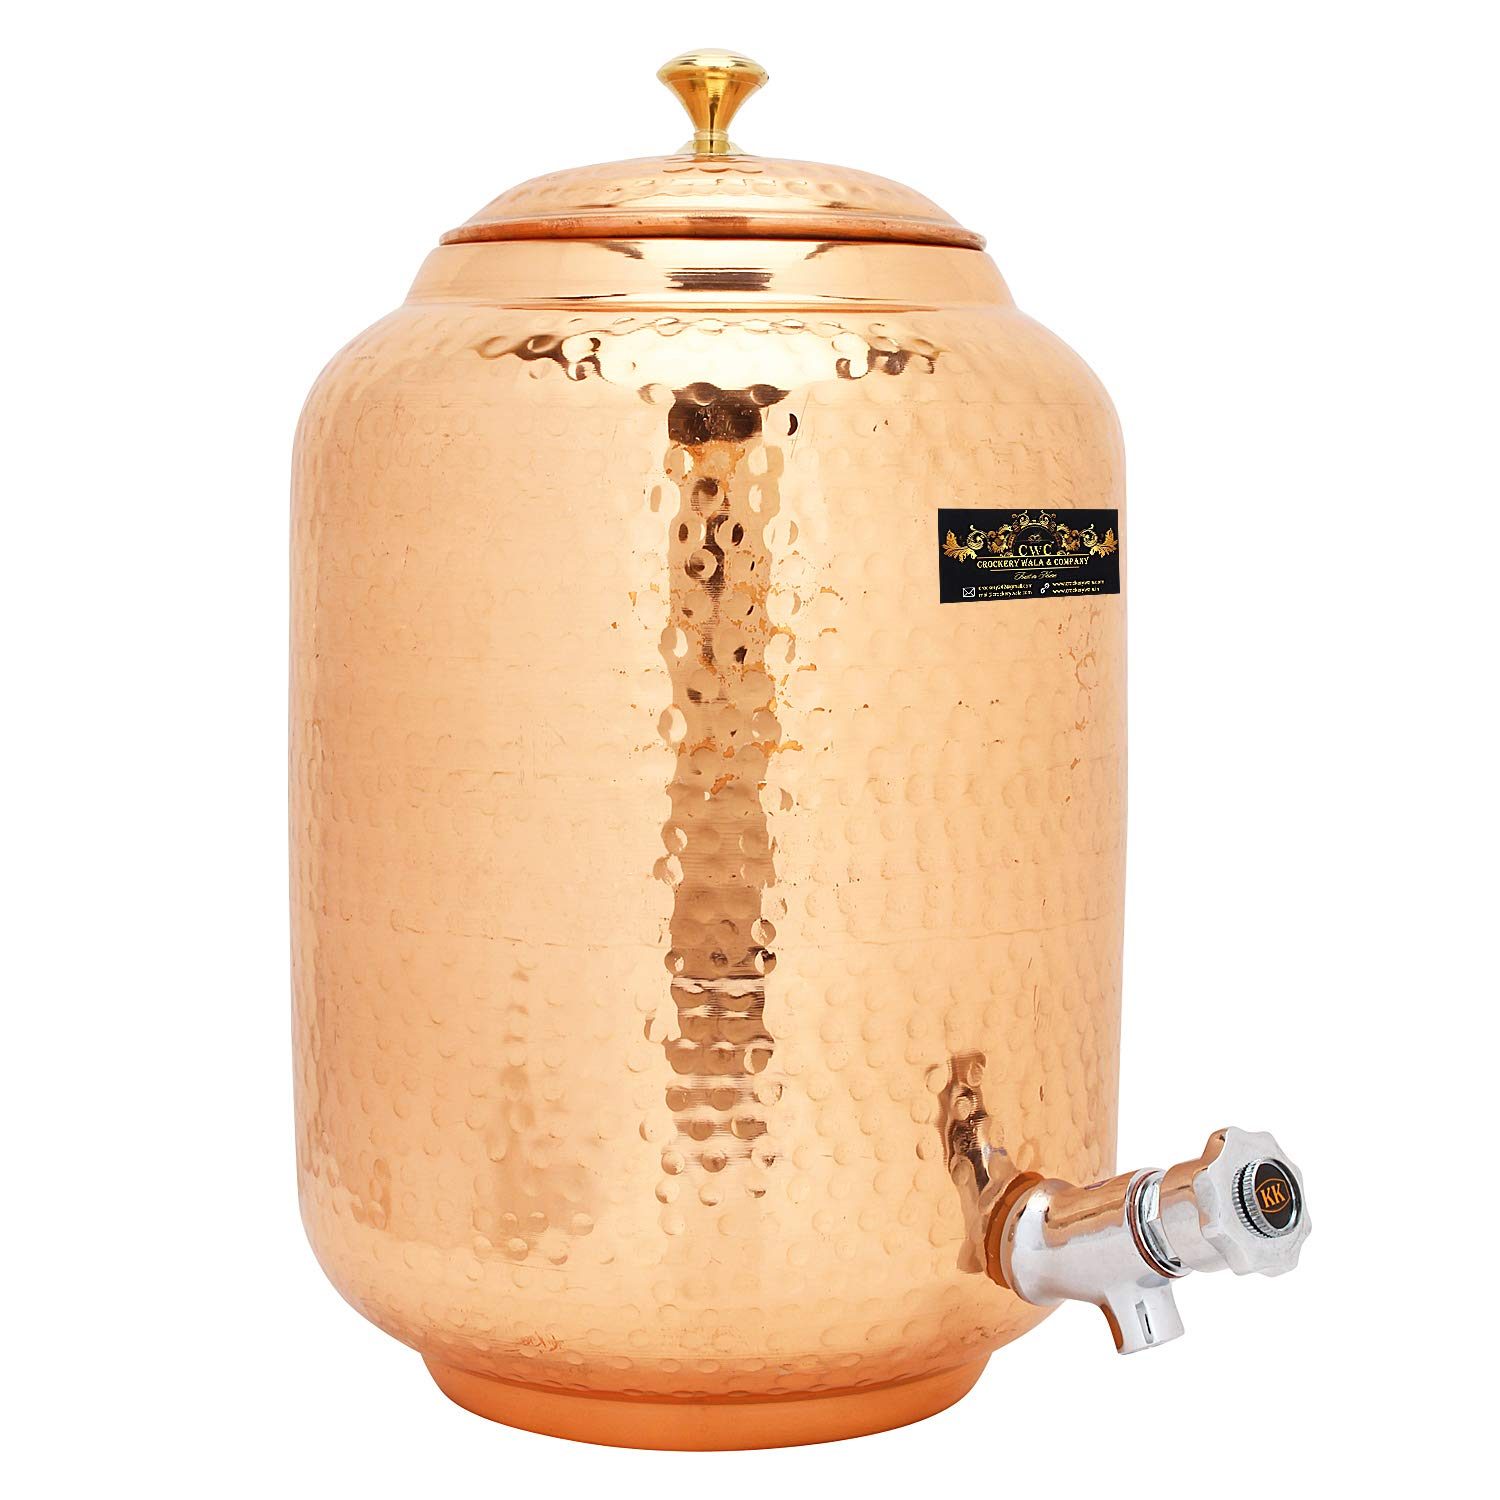 CROCKERY WALA AND COMPANY Standard Copper Water Pot, 16 Ltrs, Brown